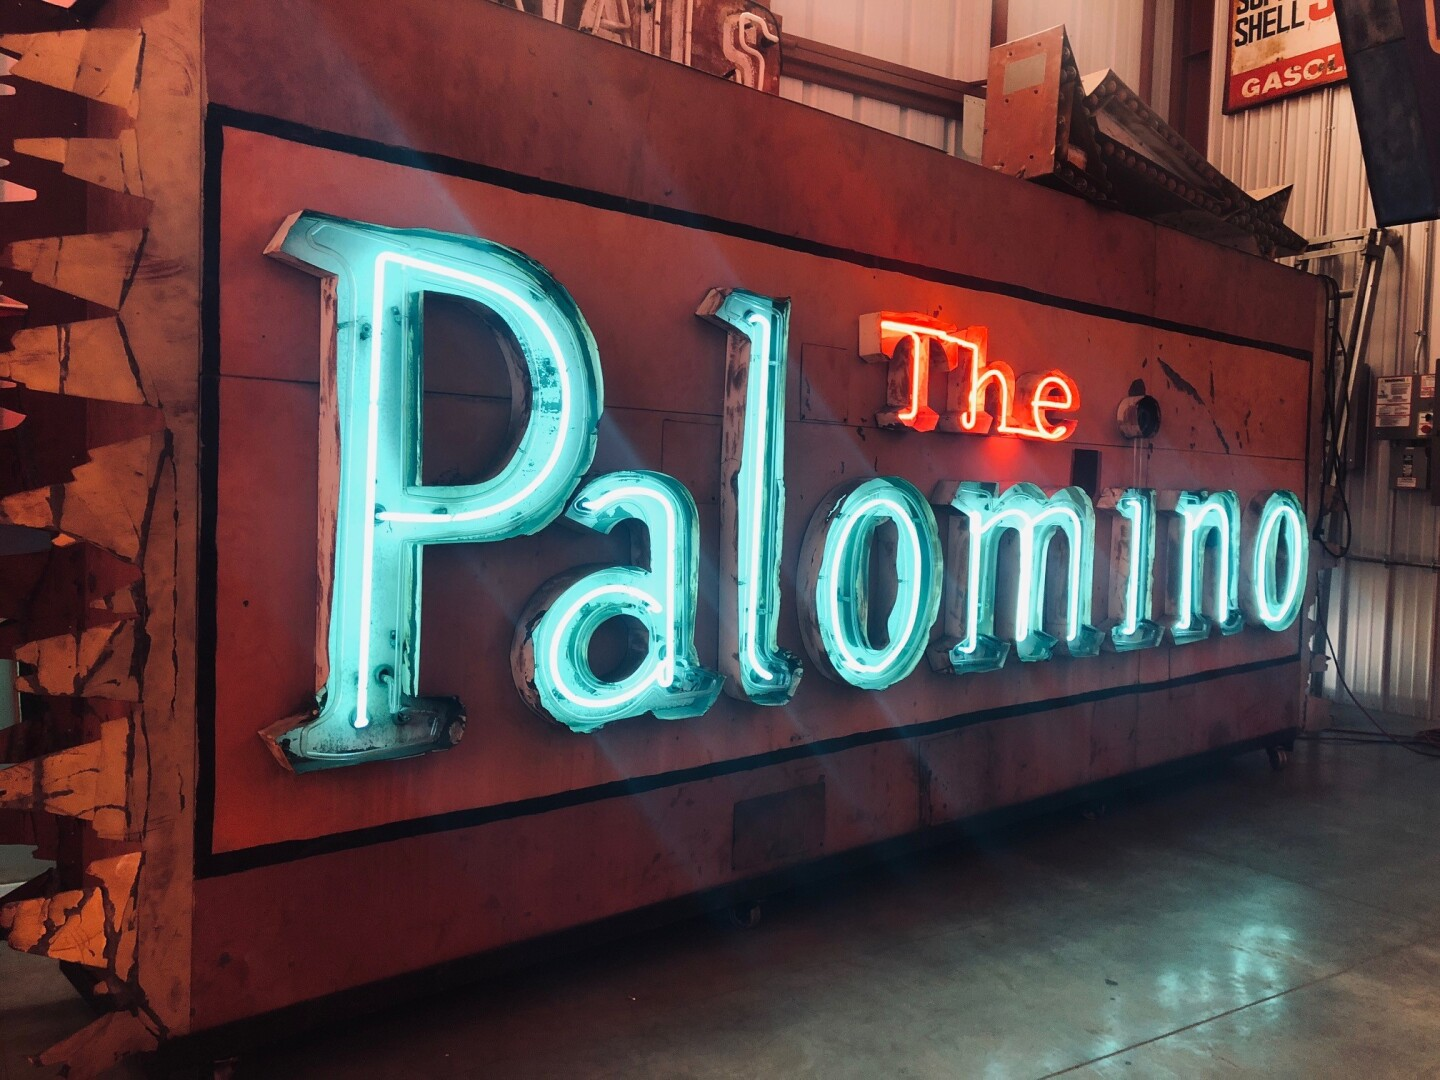 The Palomino's sign on display at the Valley Relics Museum | Courtesy of Valley Relics Museum